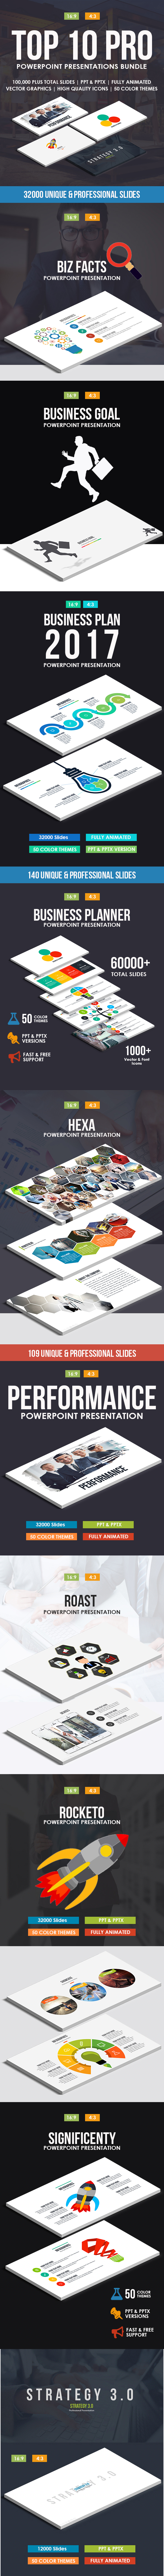 Top 10 IN 1 Pro Powerpoint Templates Bundle - Business PowerPoint Templates